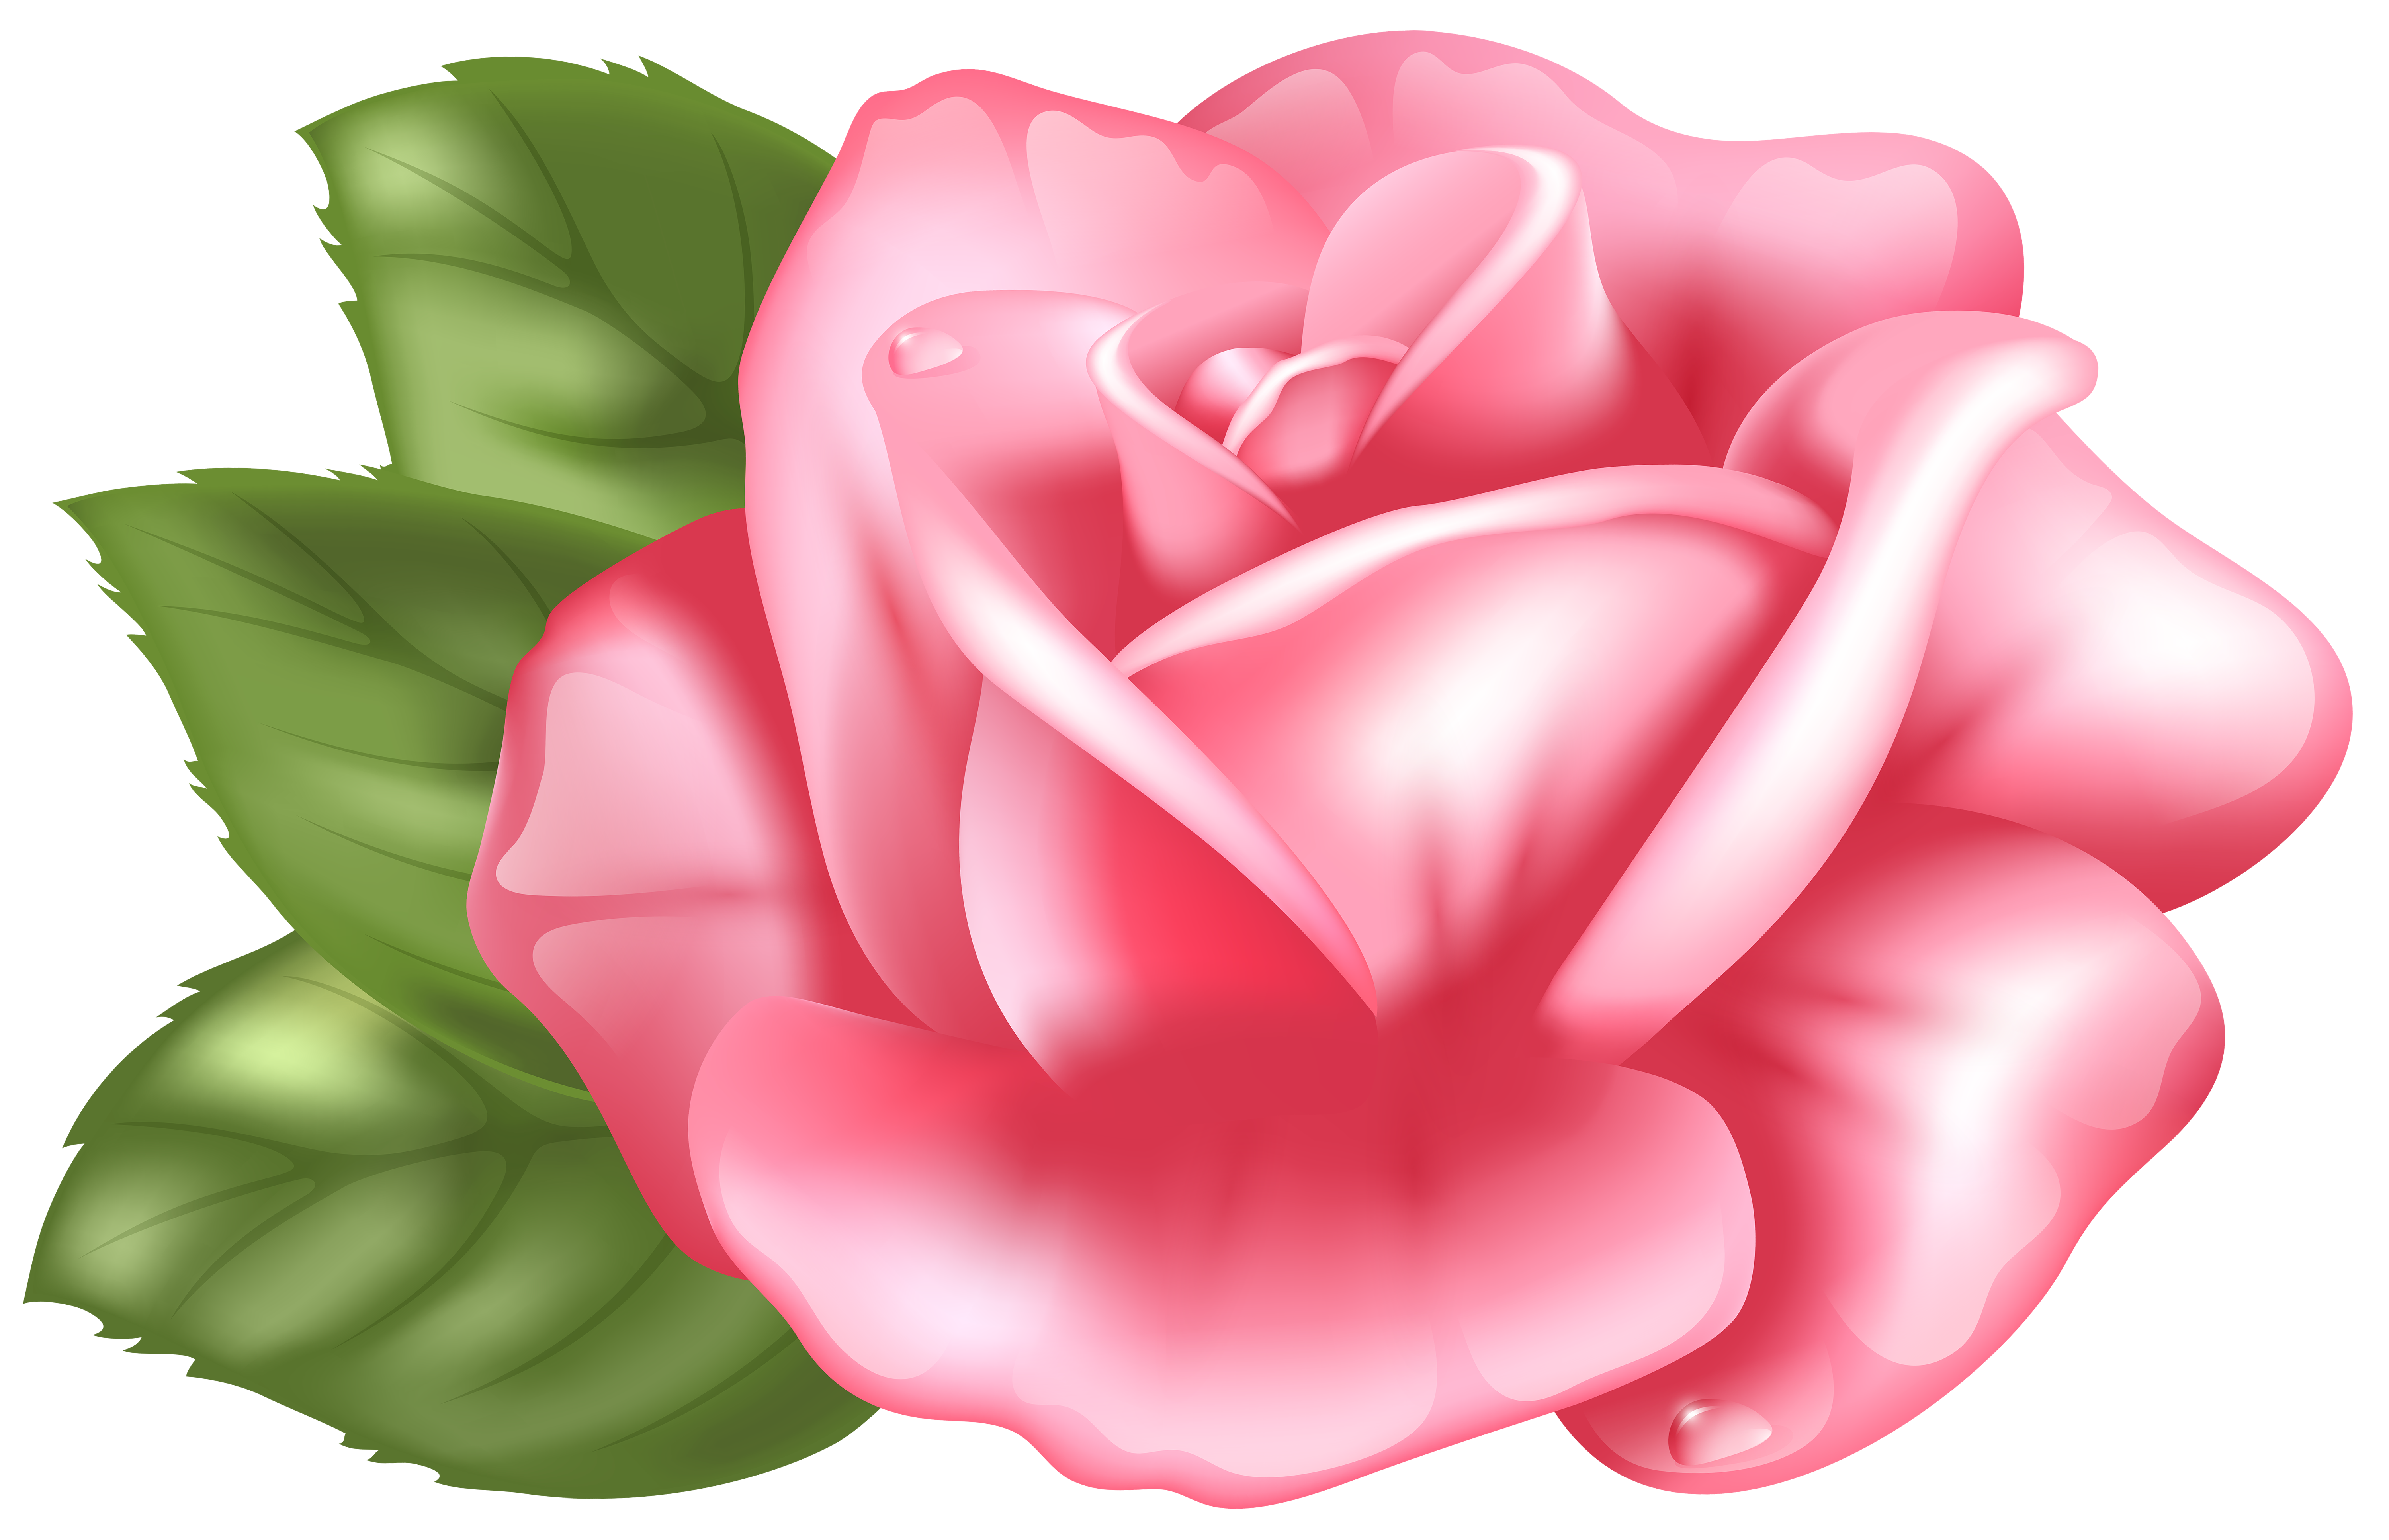 Free download of clipart images clipart free stock Rose Garden Clipart Free Download Best Rose Garden Clipart On ... clipart free stock